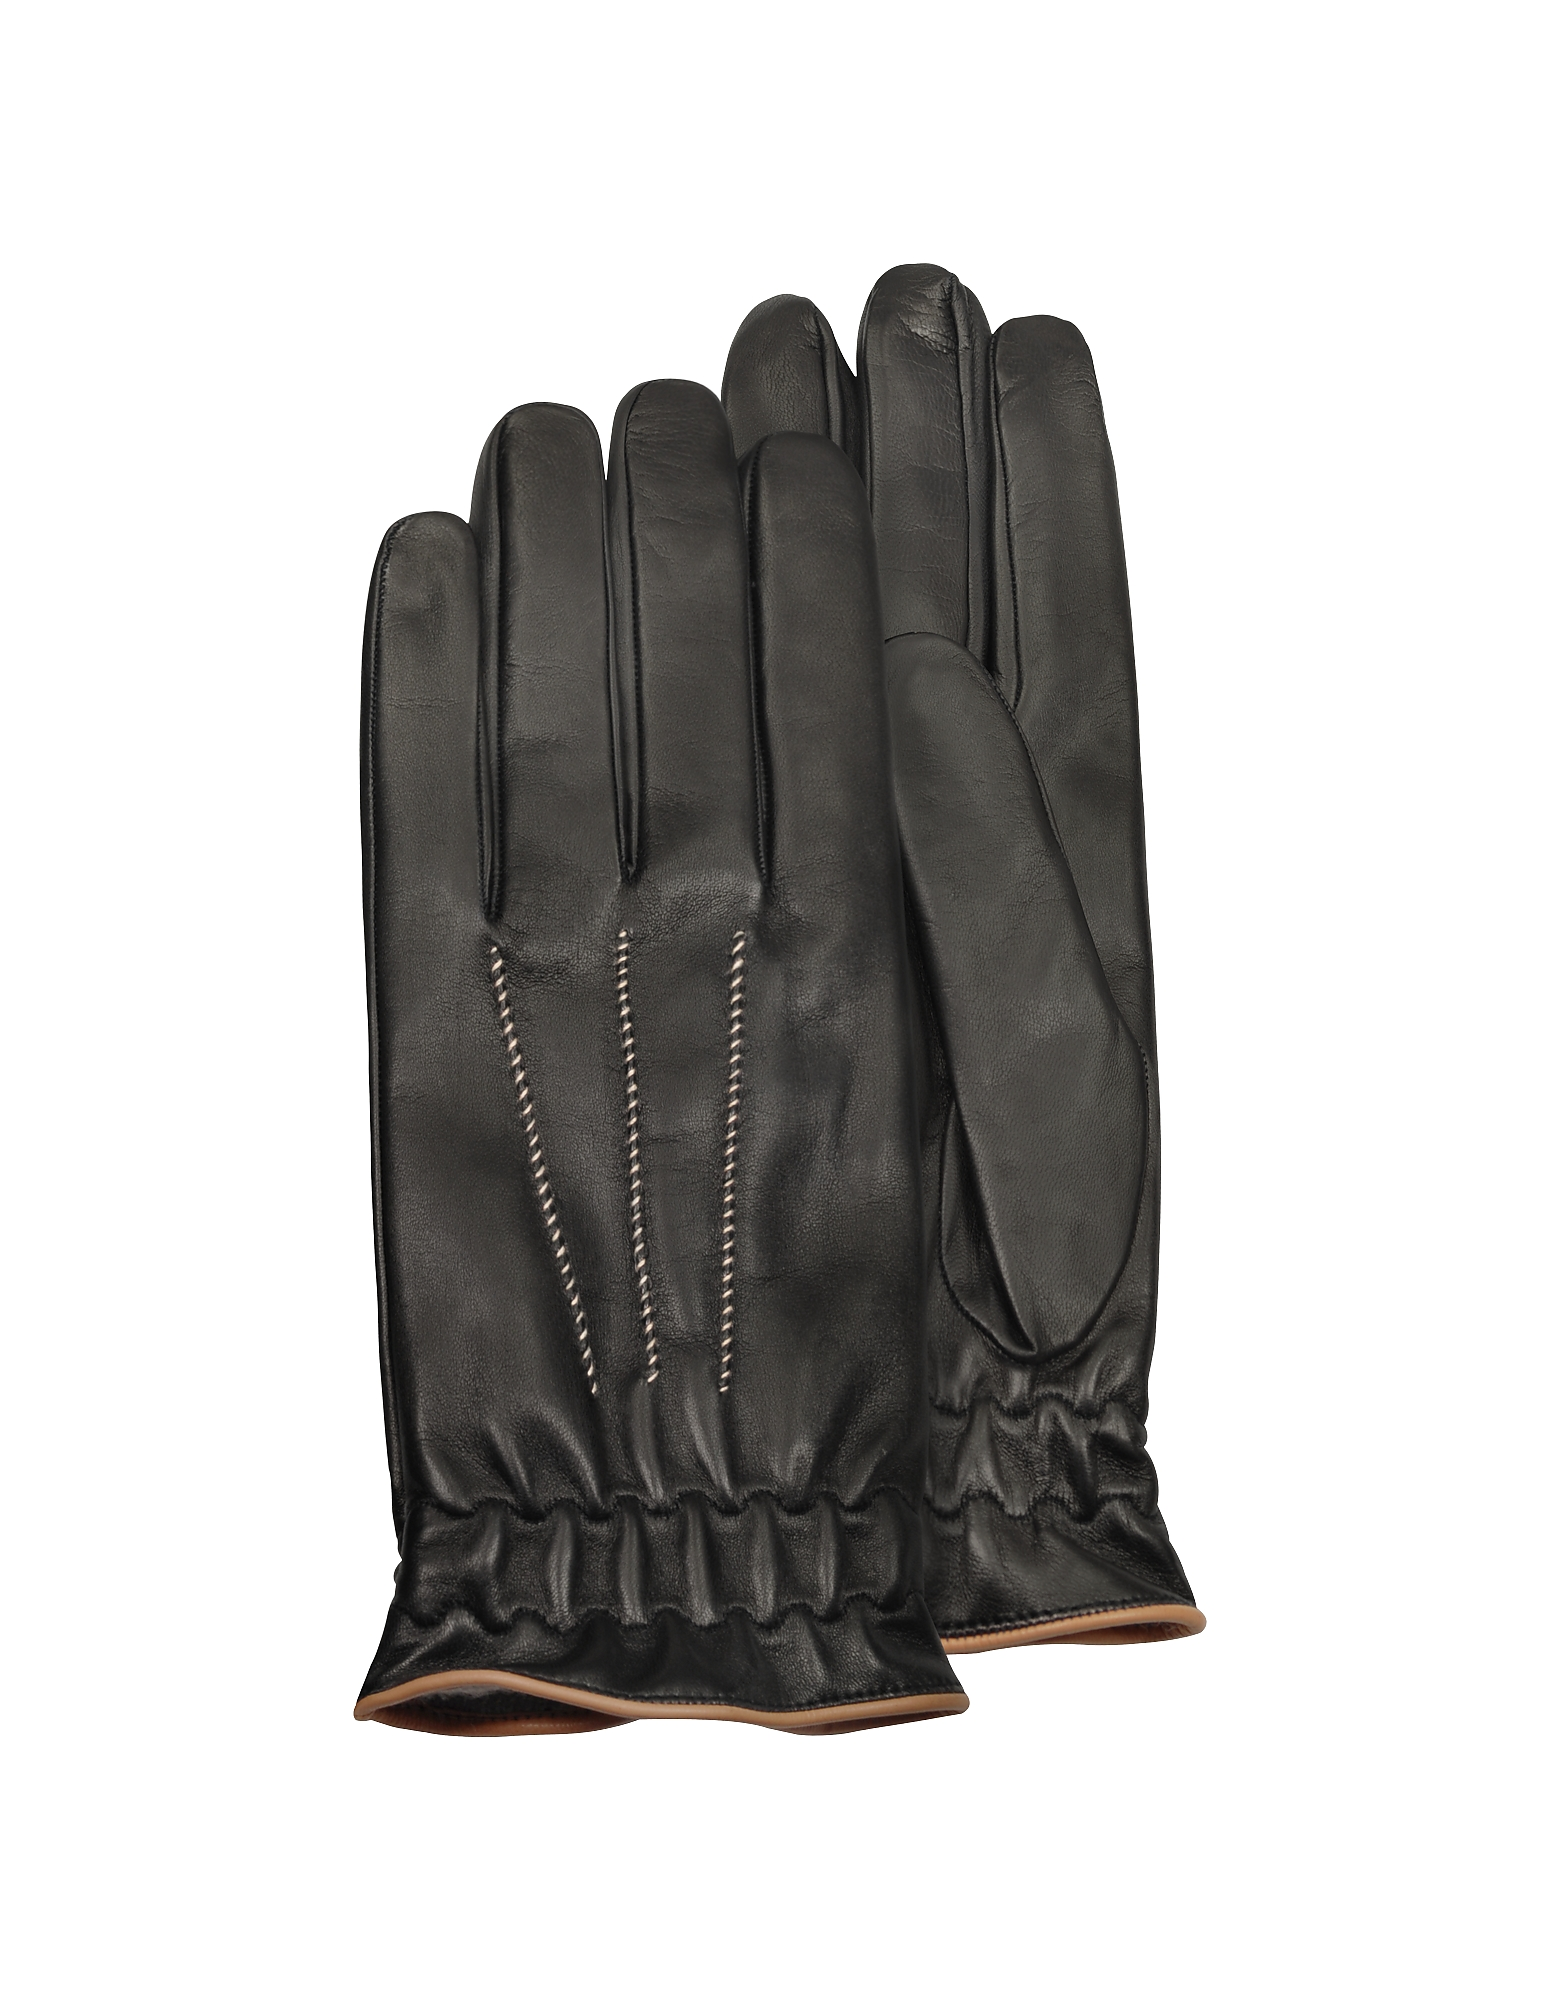 Forzieri Men's Gloves, Men's Black Cashmere Lined Calf Leather Gloves